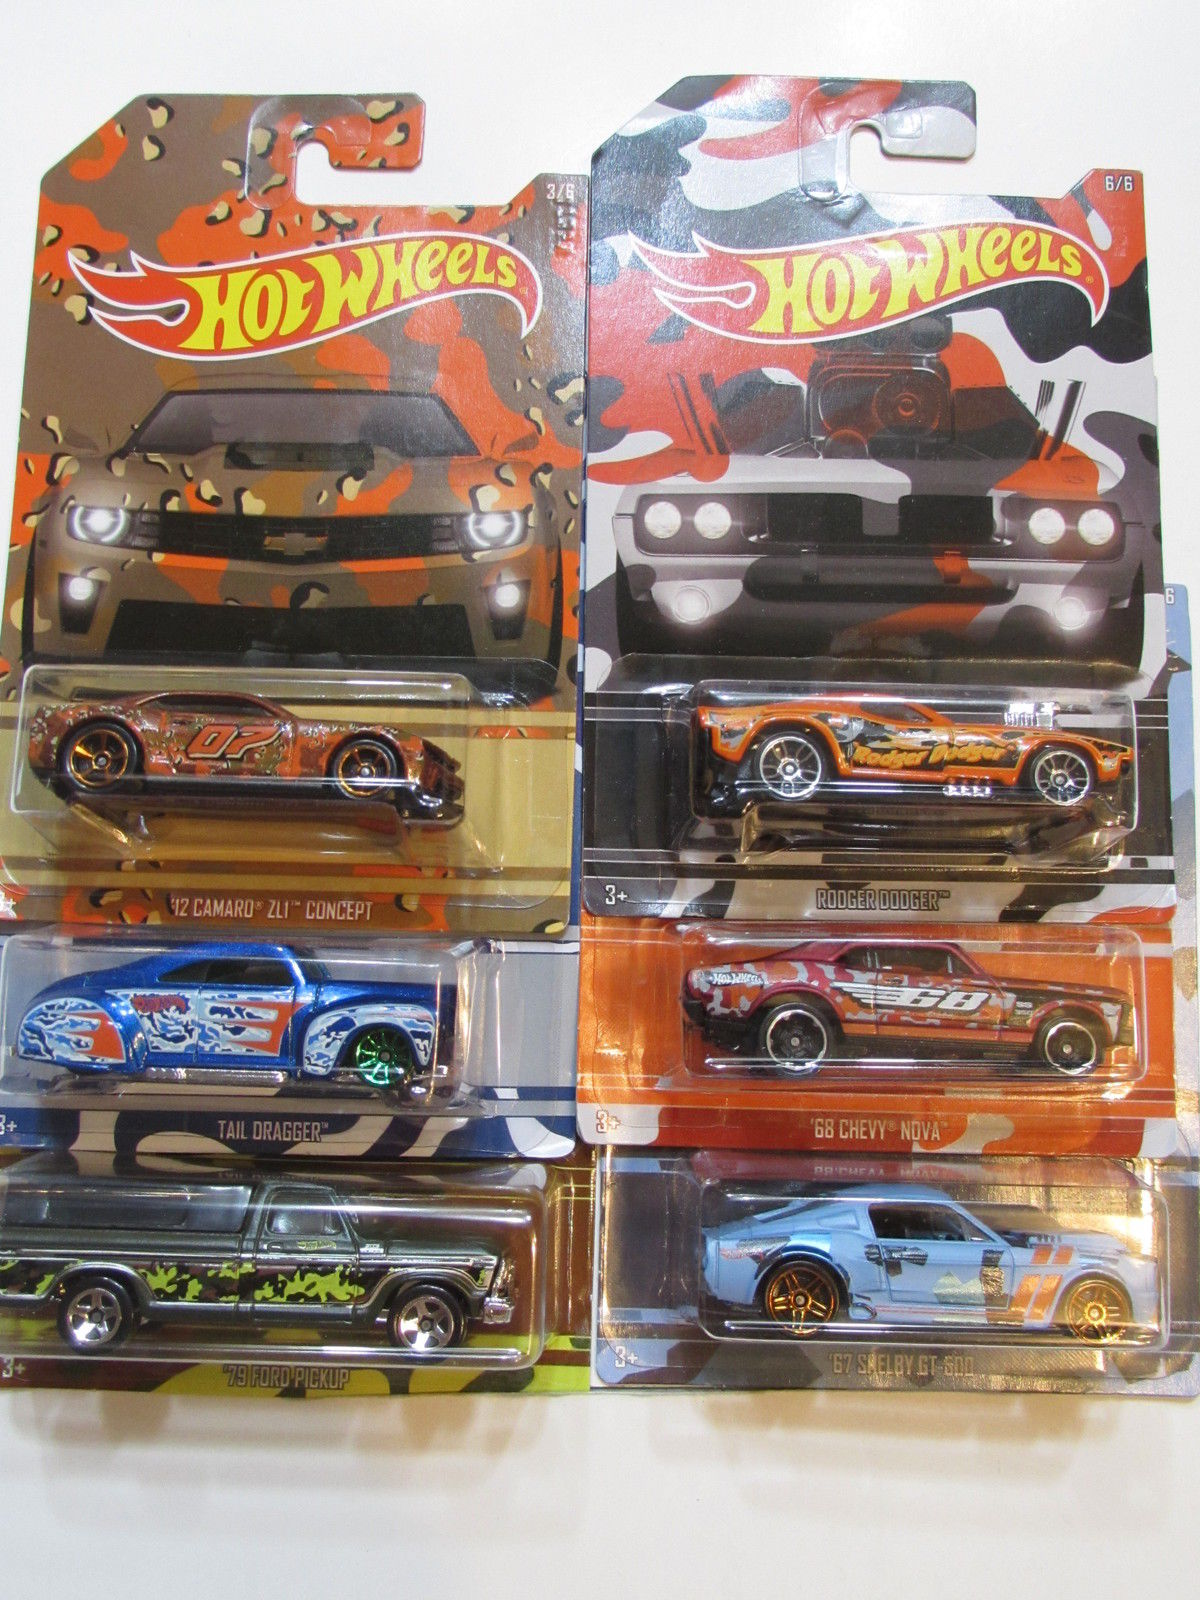 HOT WHEELS CAMOUFLAGE WALMART EXCLUSIVE COMPLETE SET OF 6 SHELBY 79 FORD CAMARO